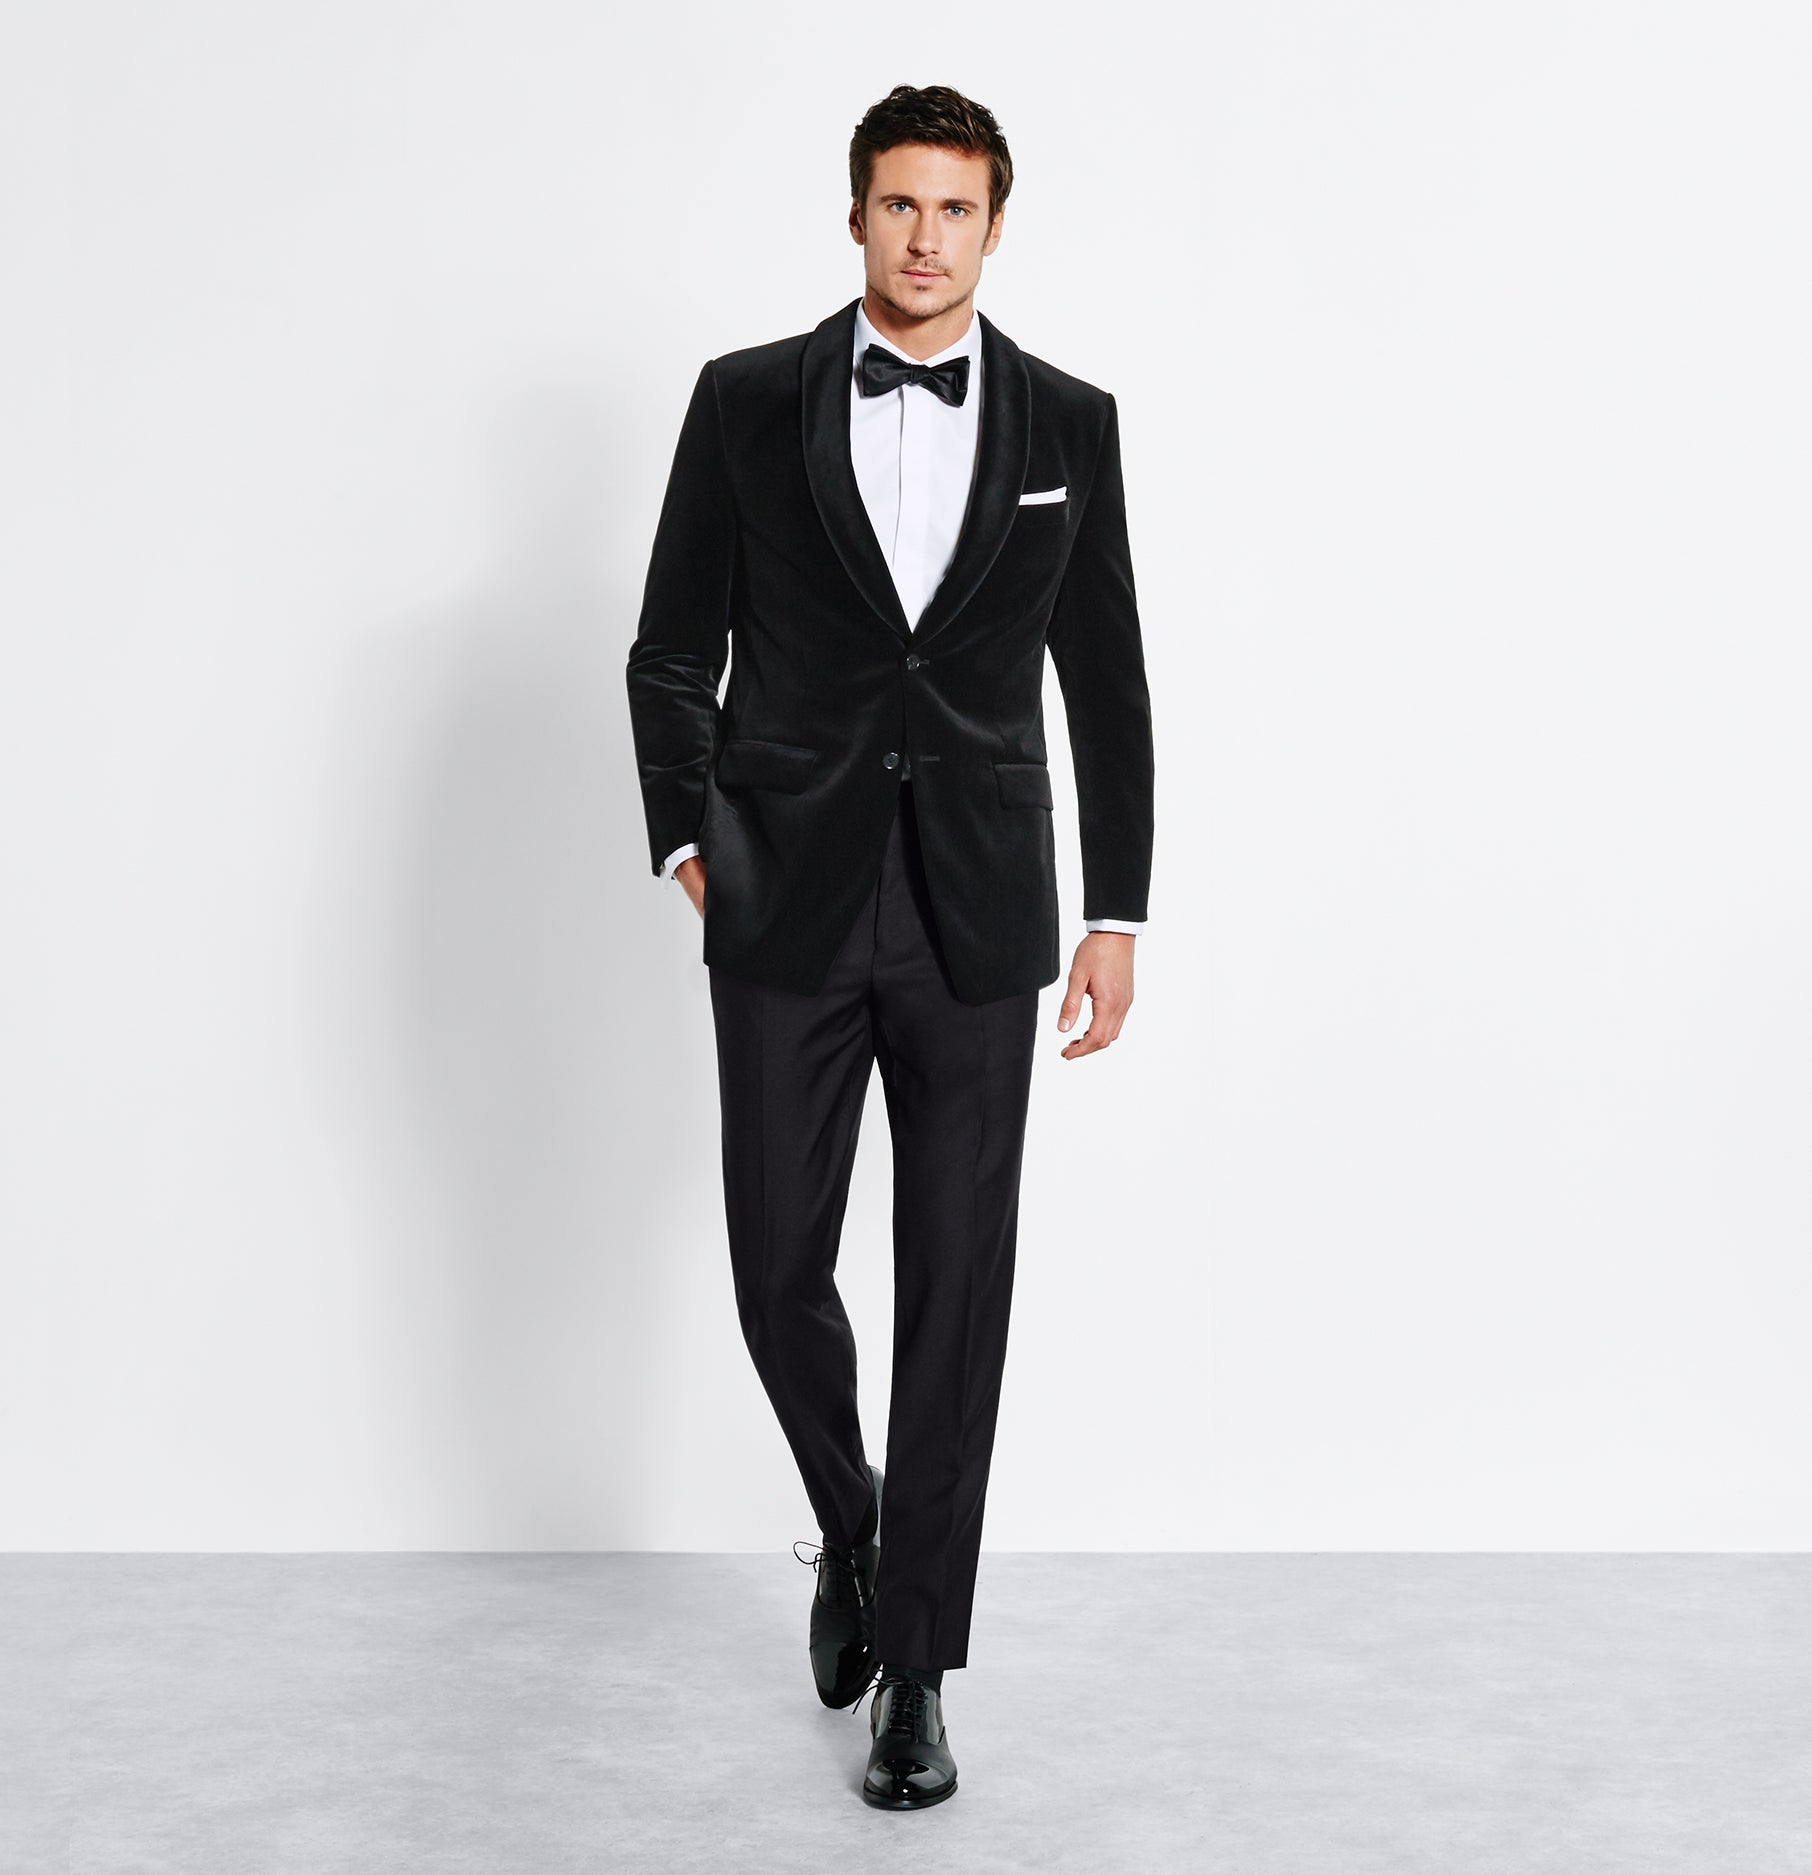 Velvet Jacket Tuxedo | The Black Tux